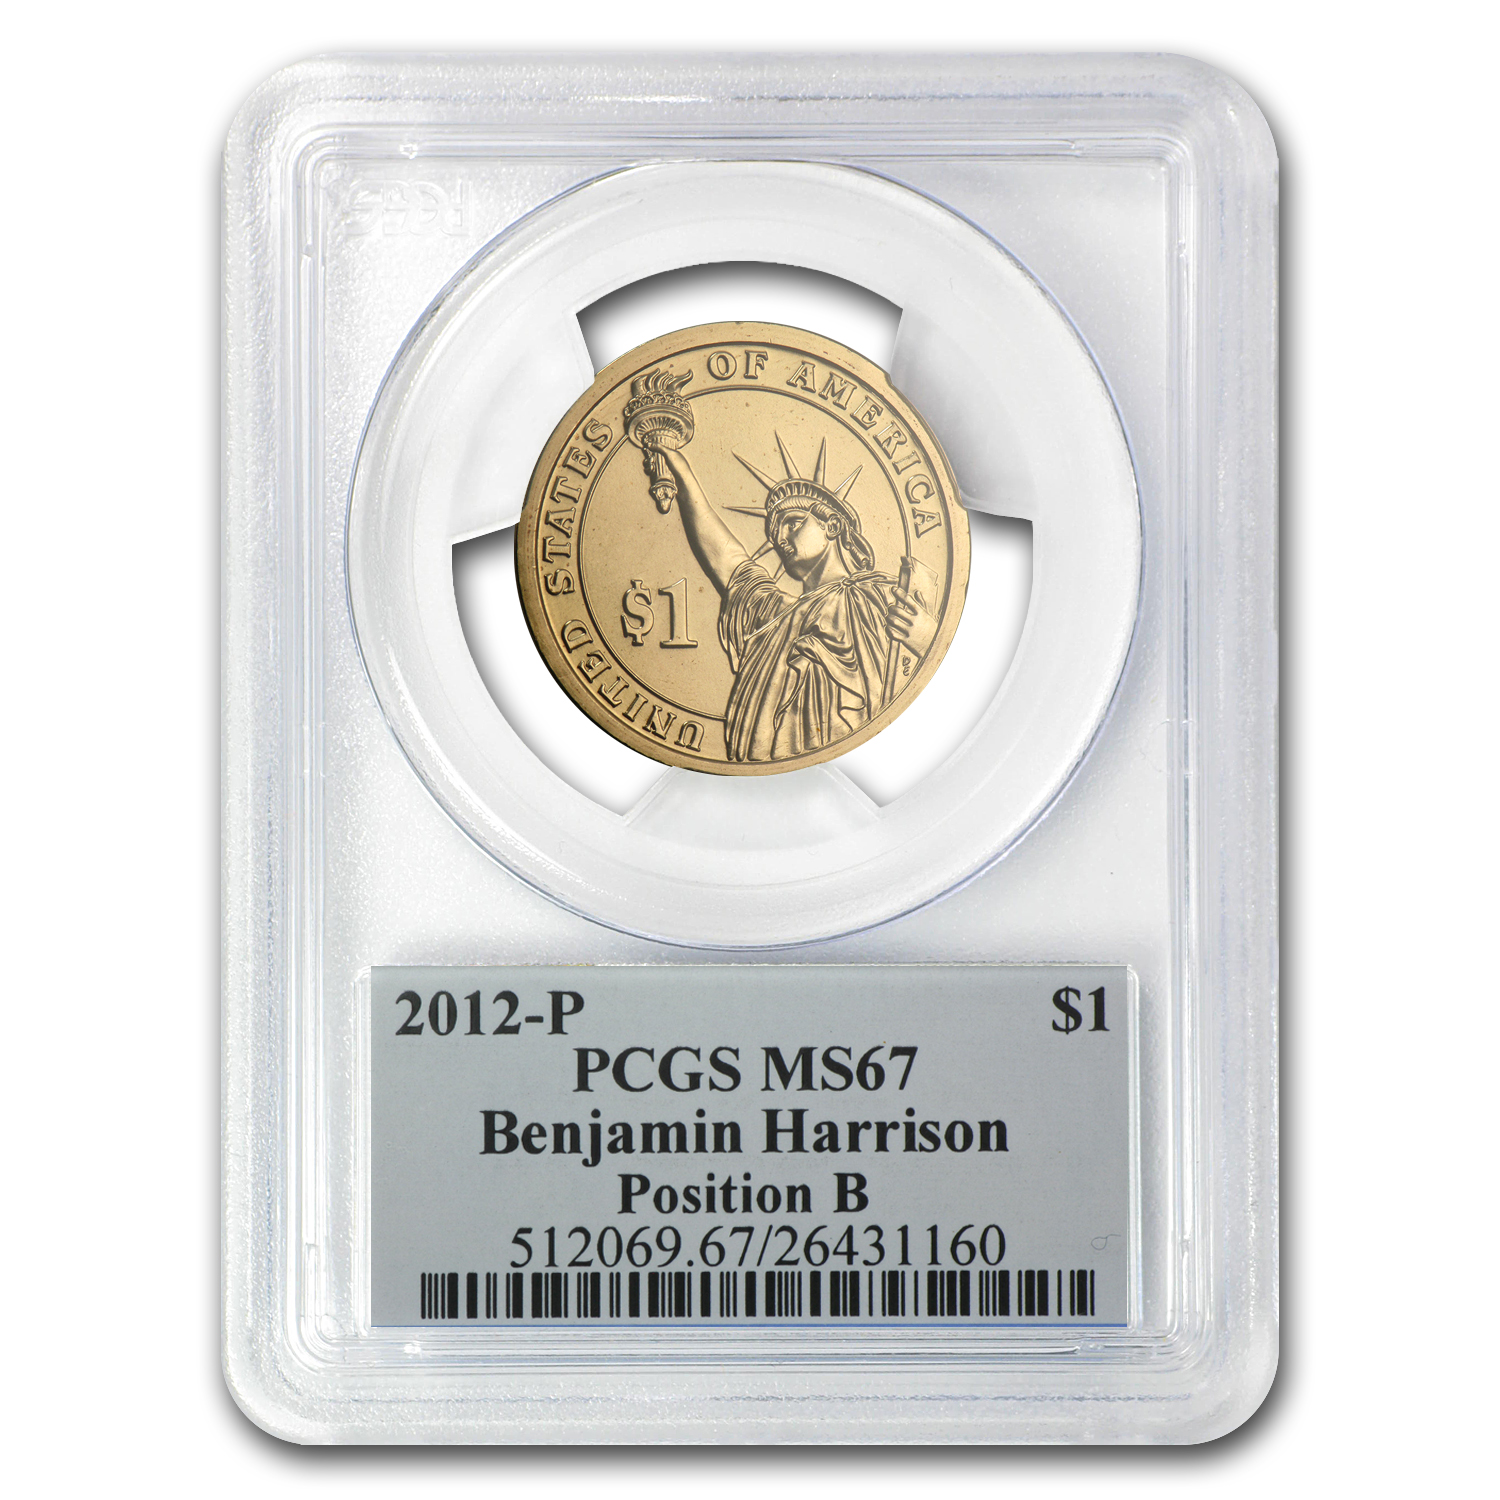 2012-P B Position Benjamin Harrison Dollar MS-67 PCGS